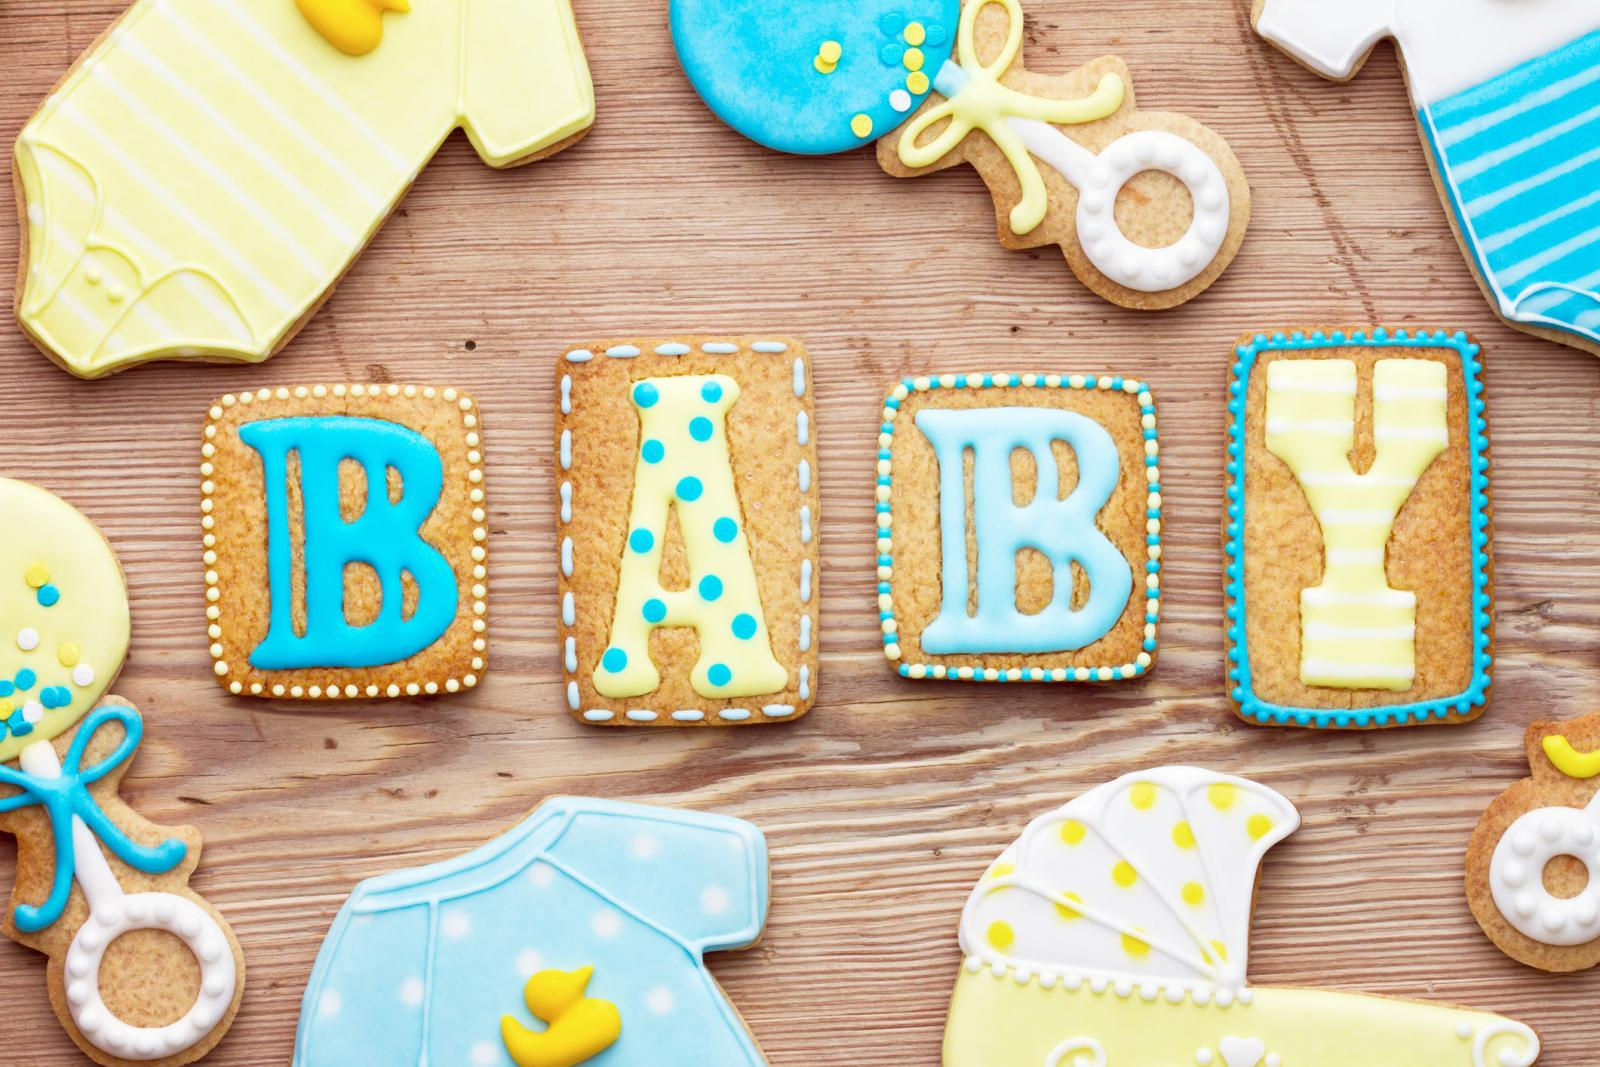 Frosted decorated cookies for a baby shower